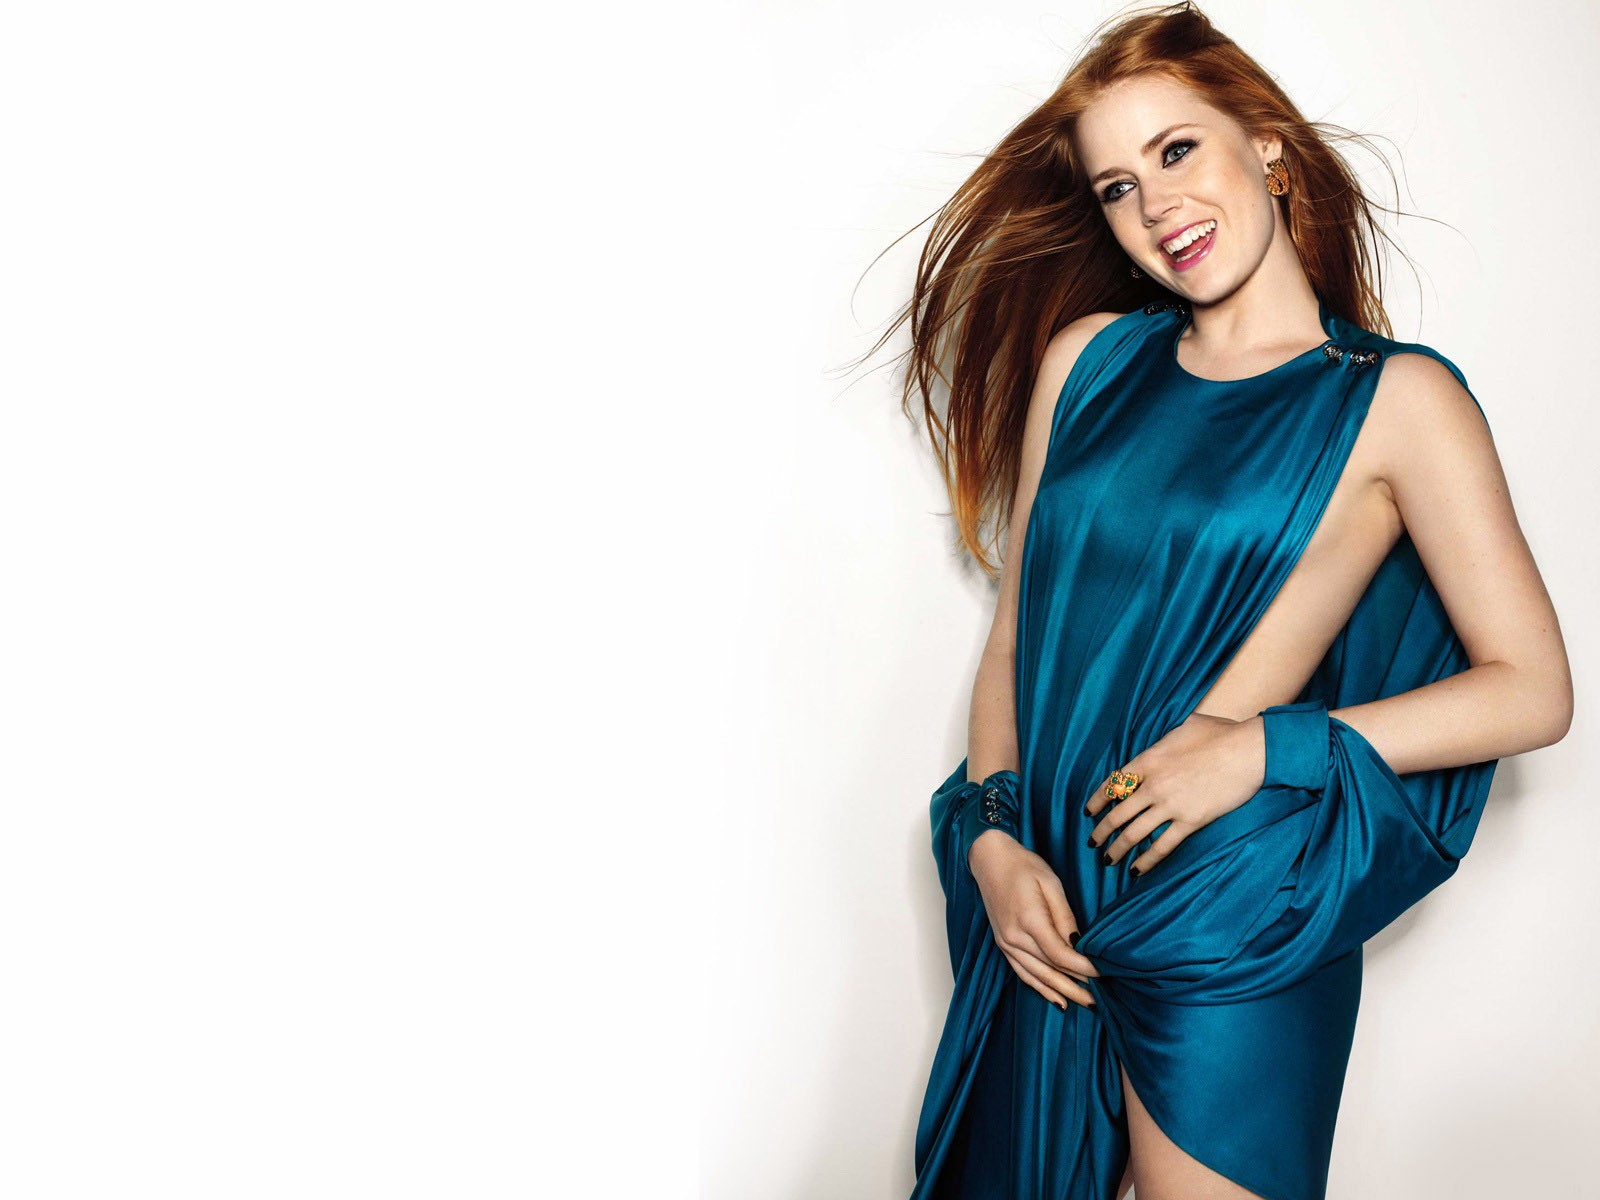 Amy Adams Hot Hd Wallpaper for Desktop and Mobiles